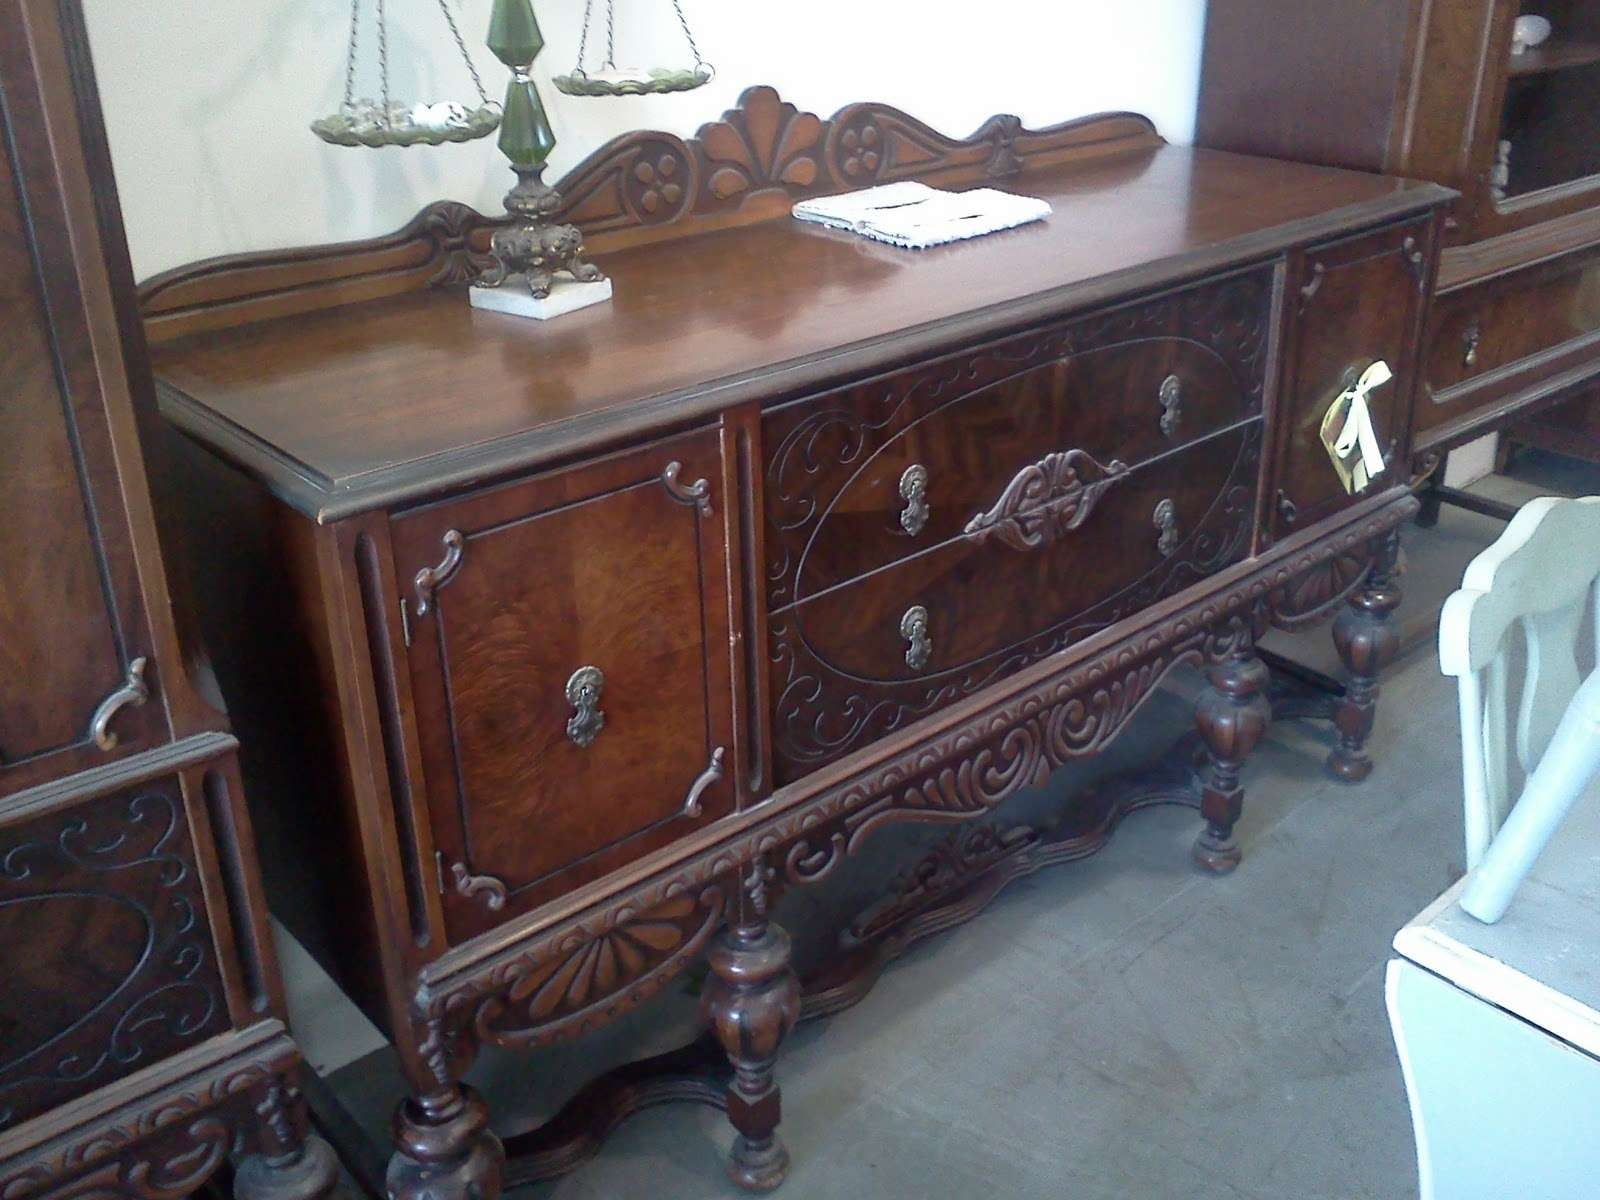 Antique Sideboard Ideas On Pinterest Shabby Chic Sideboard Within Antique Sideboards And Buffets (View 4 of 20)